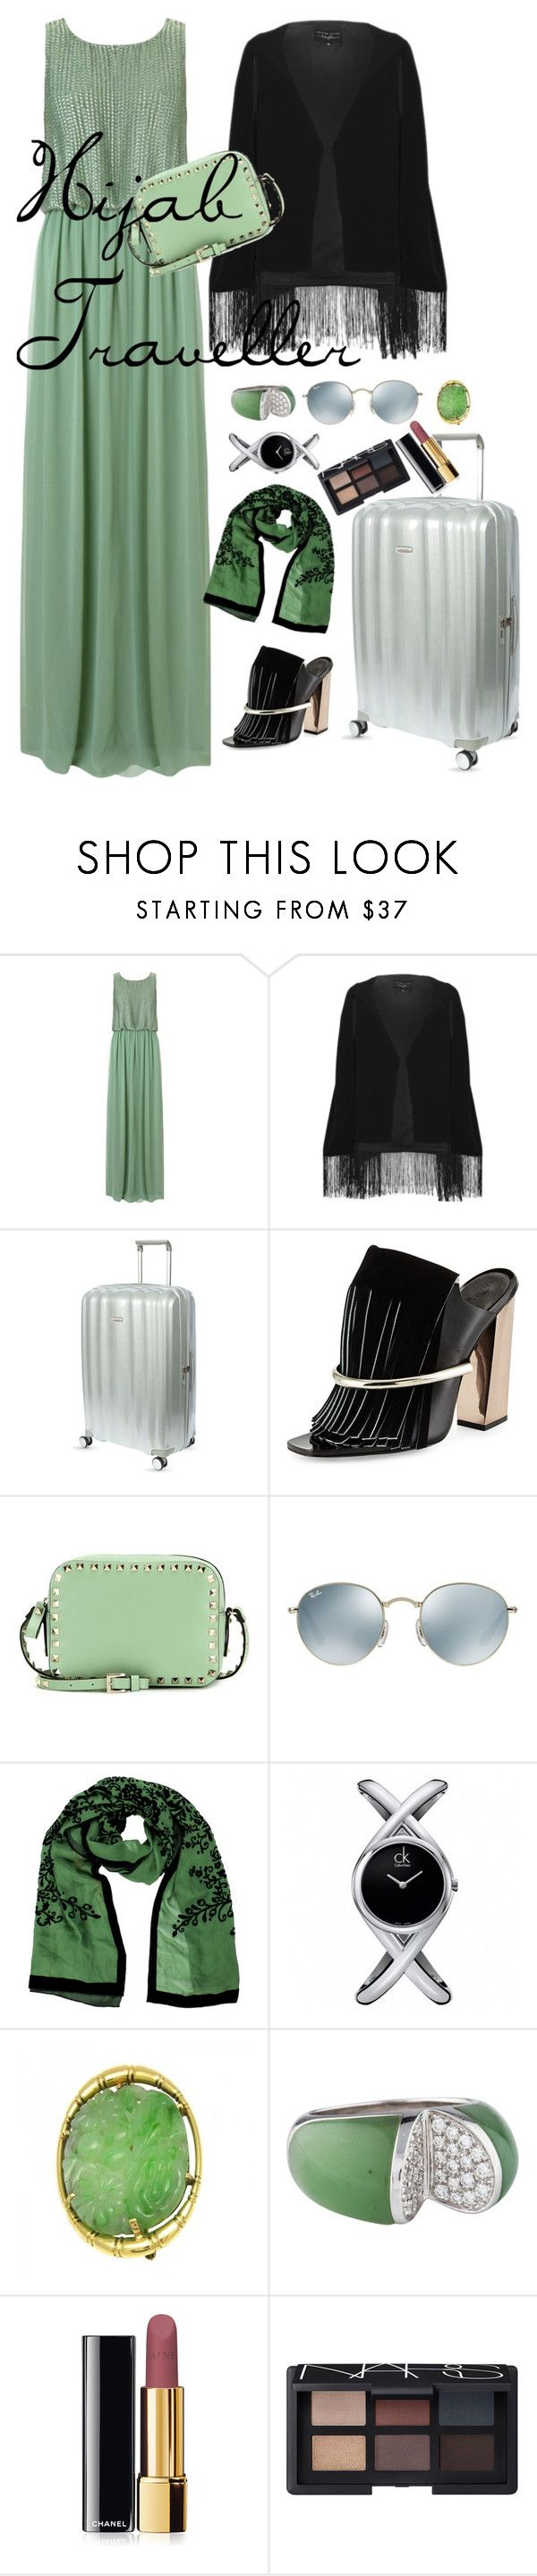 Hijab Traveller by dinyvia on Polyvore featuring beauty, NARS Cosmetics, Chanel, Moschino, Ray-Ban, Calvin Klein, Cartier, Samsonite, Valentino and Ariella